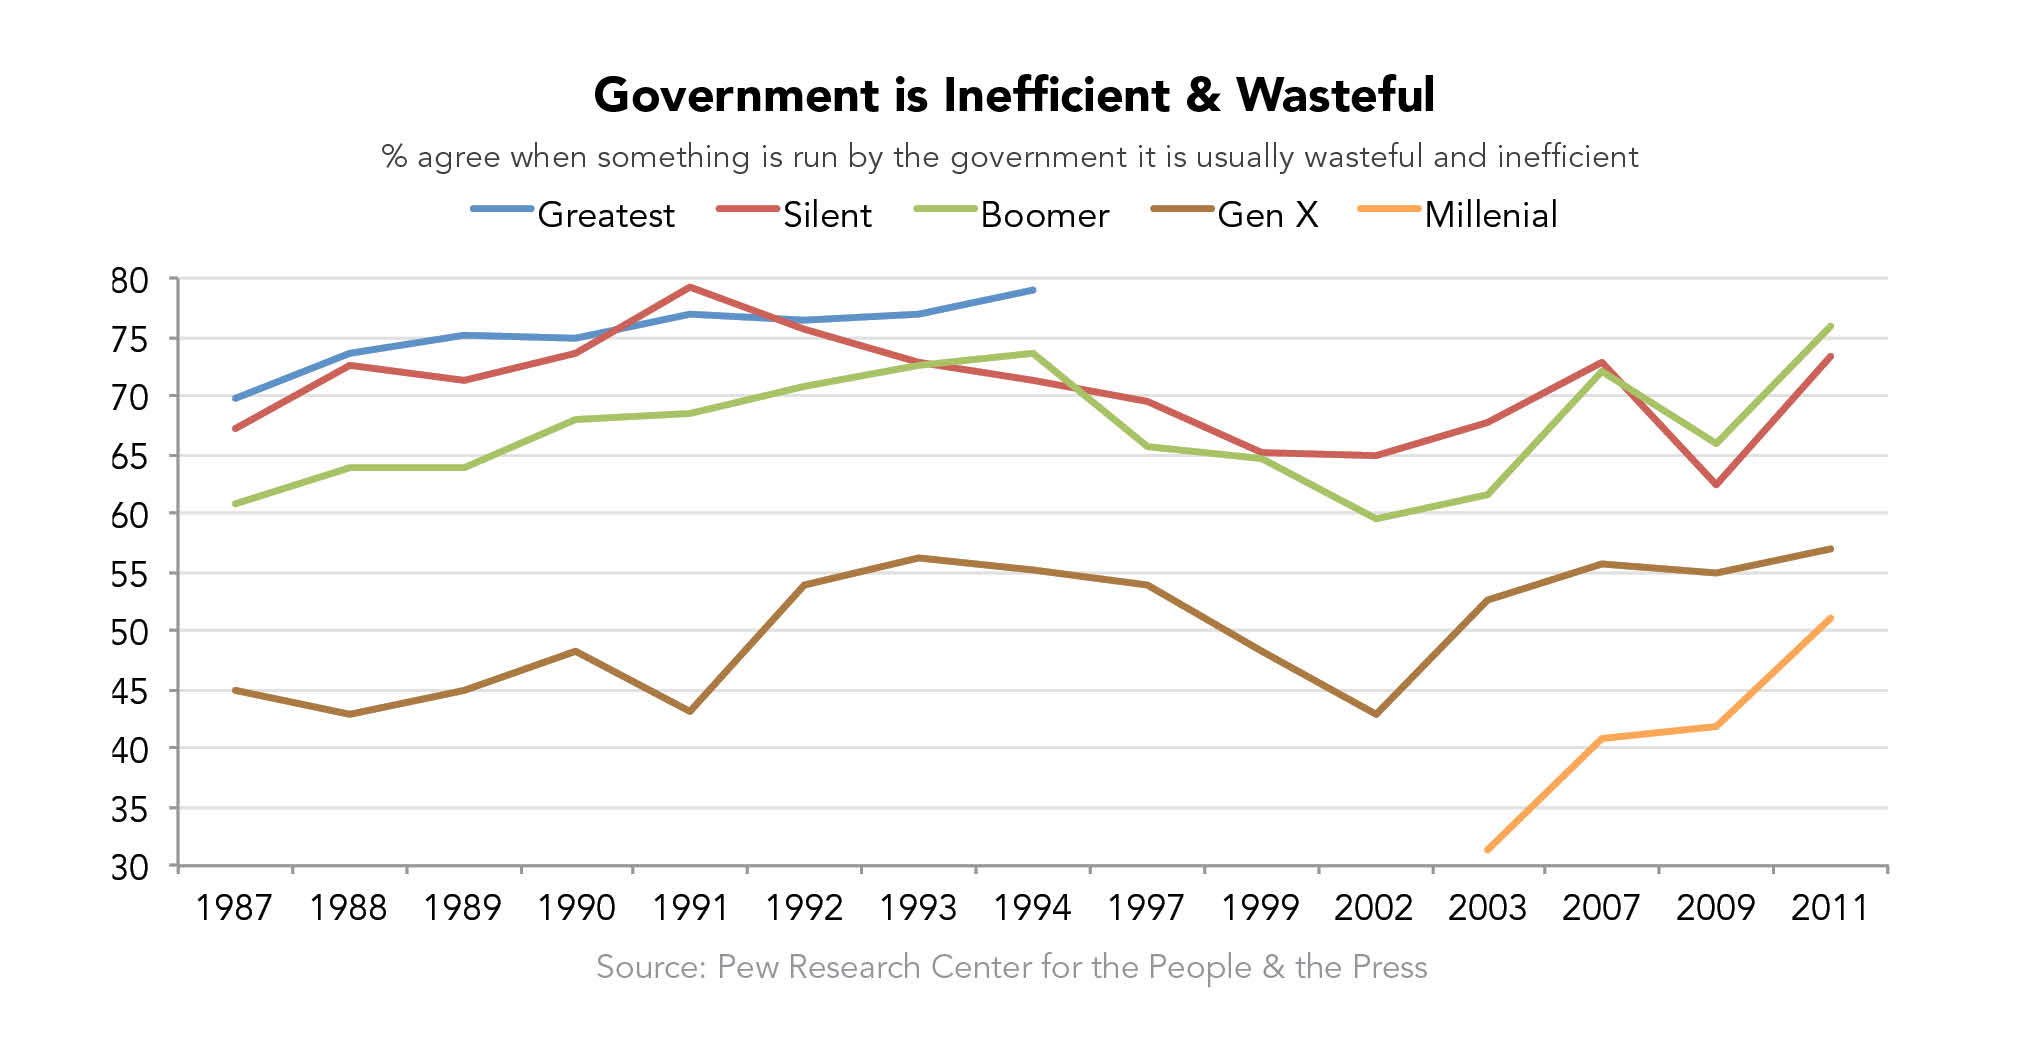 Government is Inefficient and Wasteful